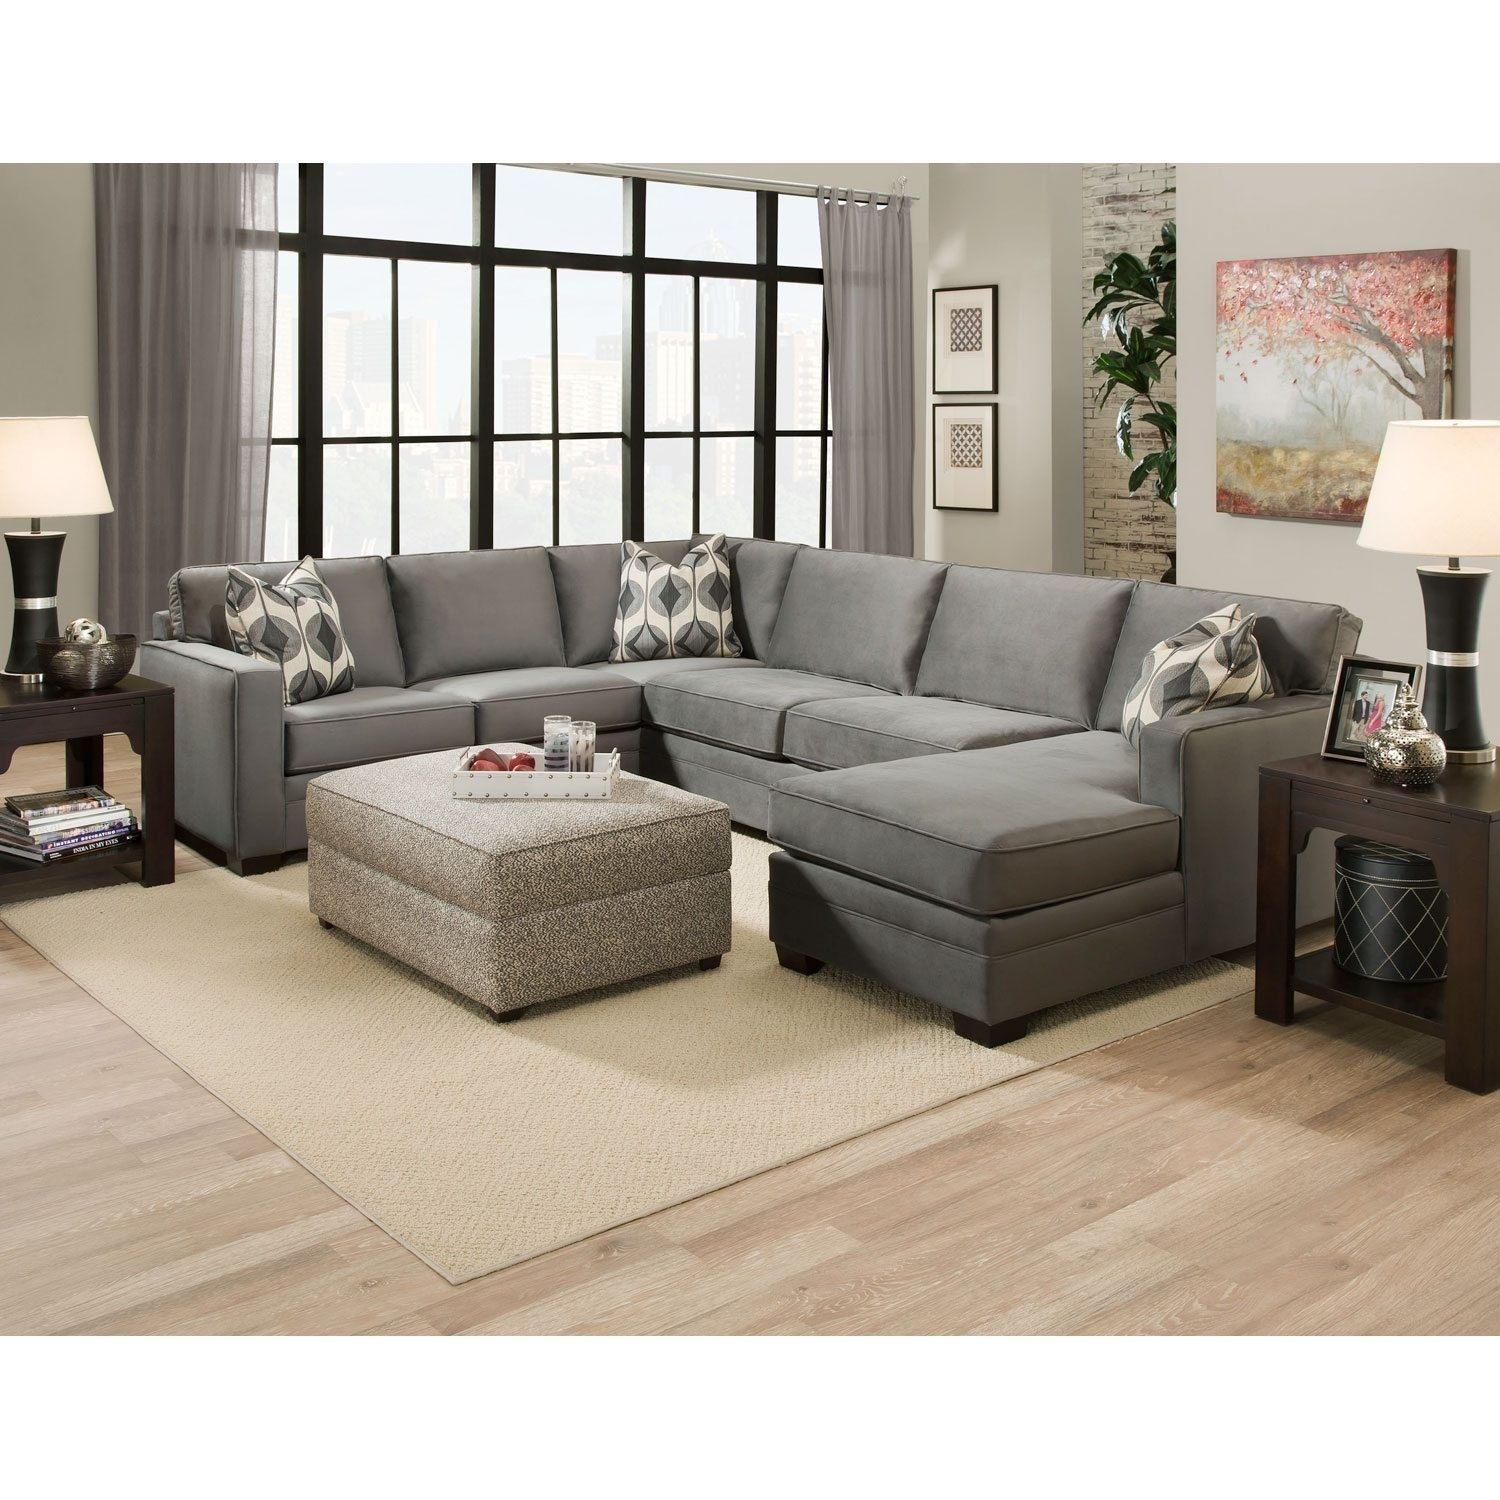 most durable sofa brands bed melbourne vic sectional best leather with